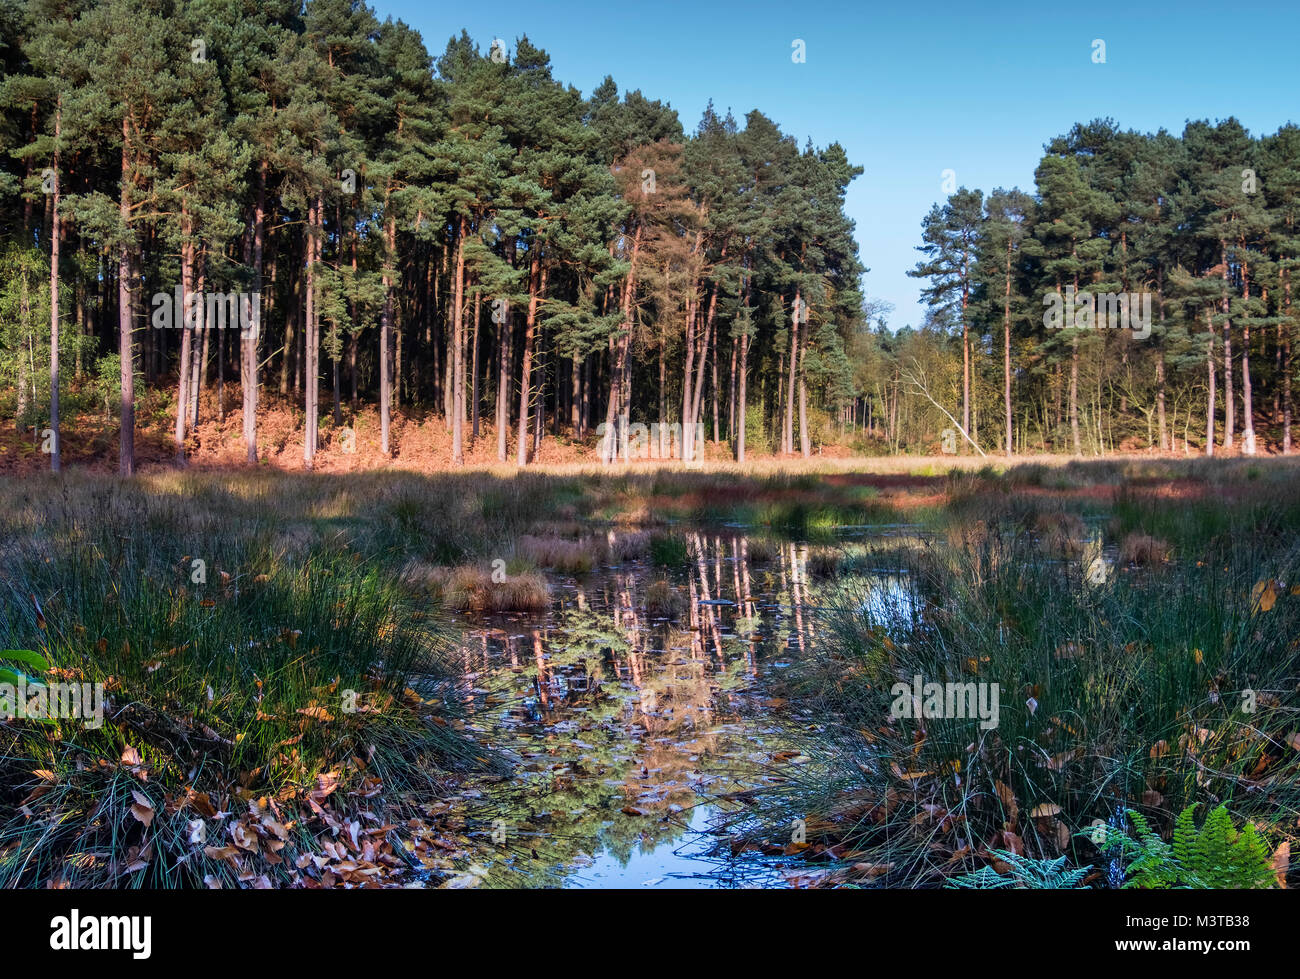 Doolittle Moss SSSI in Delamere Forest, Delamere, Cheshire, England, UK - Stock Image